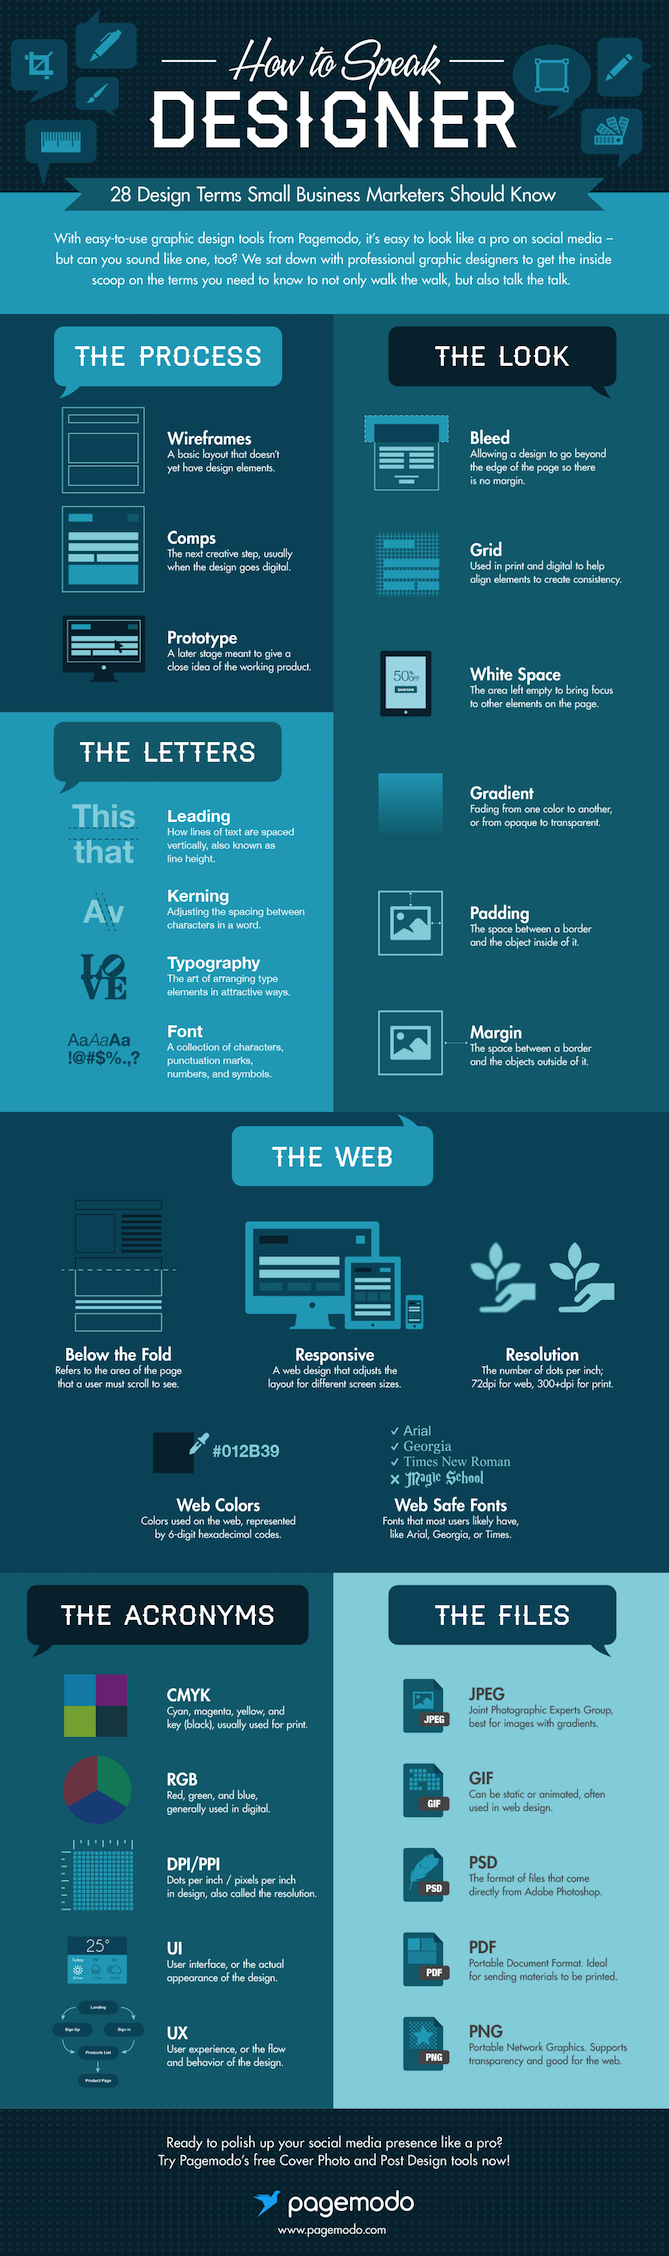 design-terms-infographic